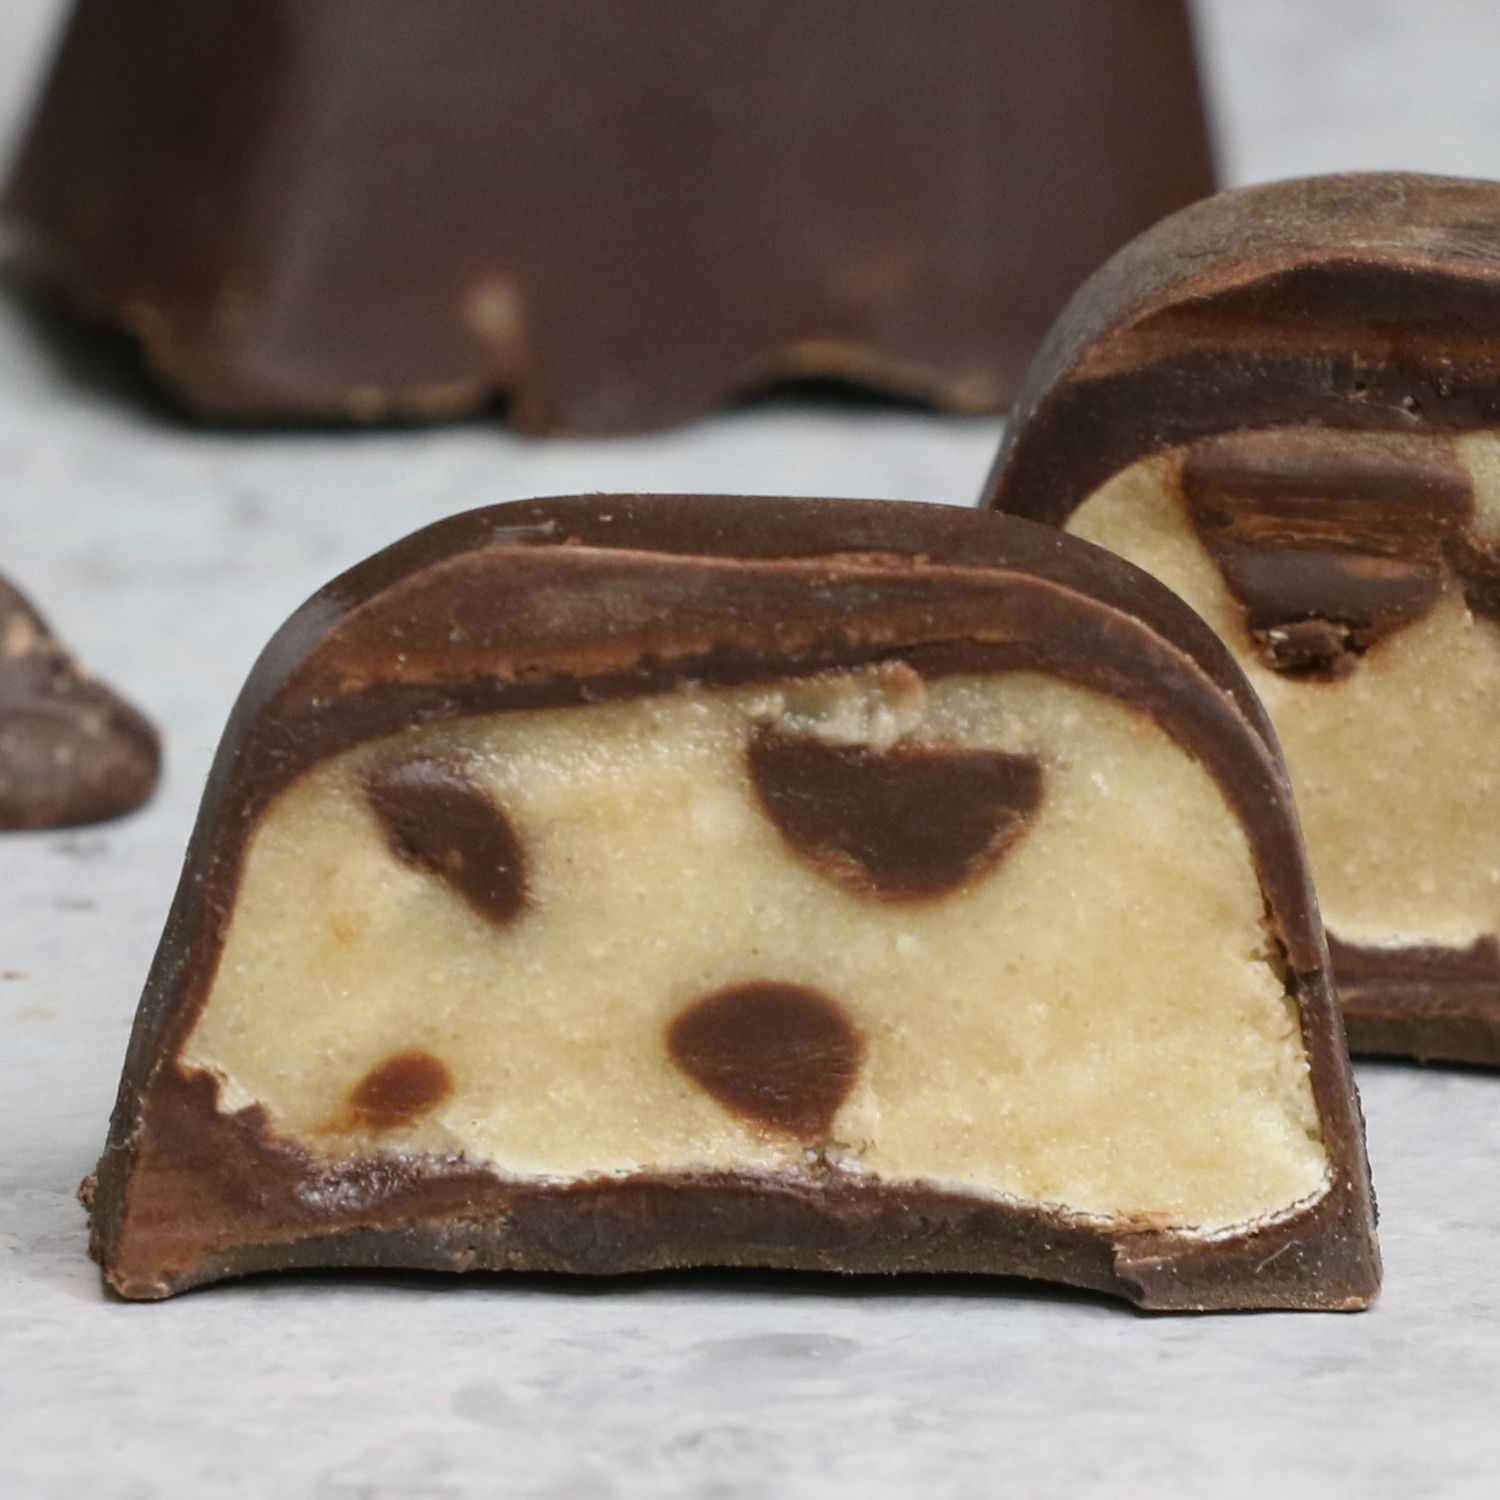 Chocolate Covered Cookie Dough images